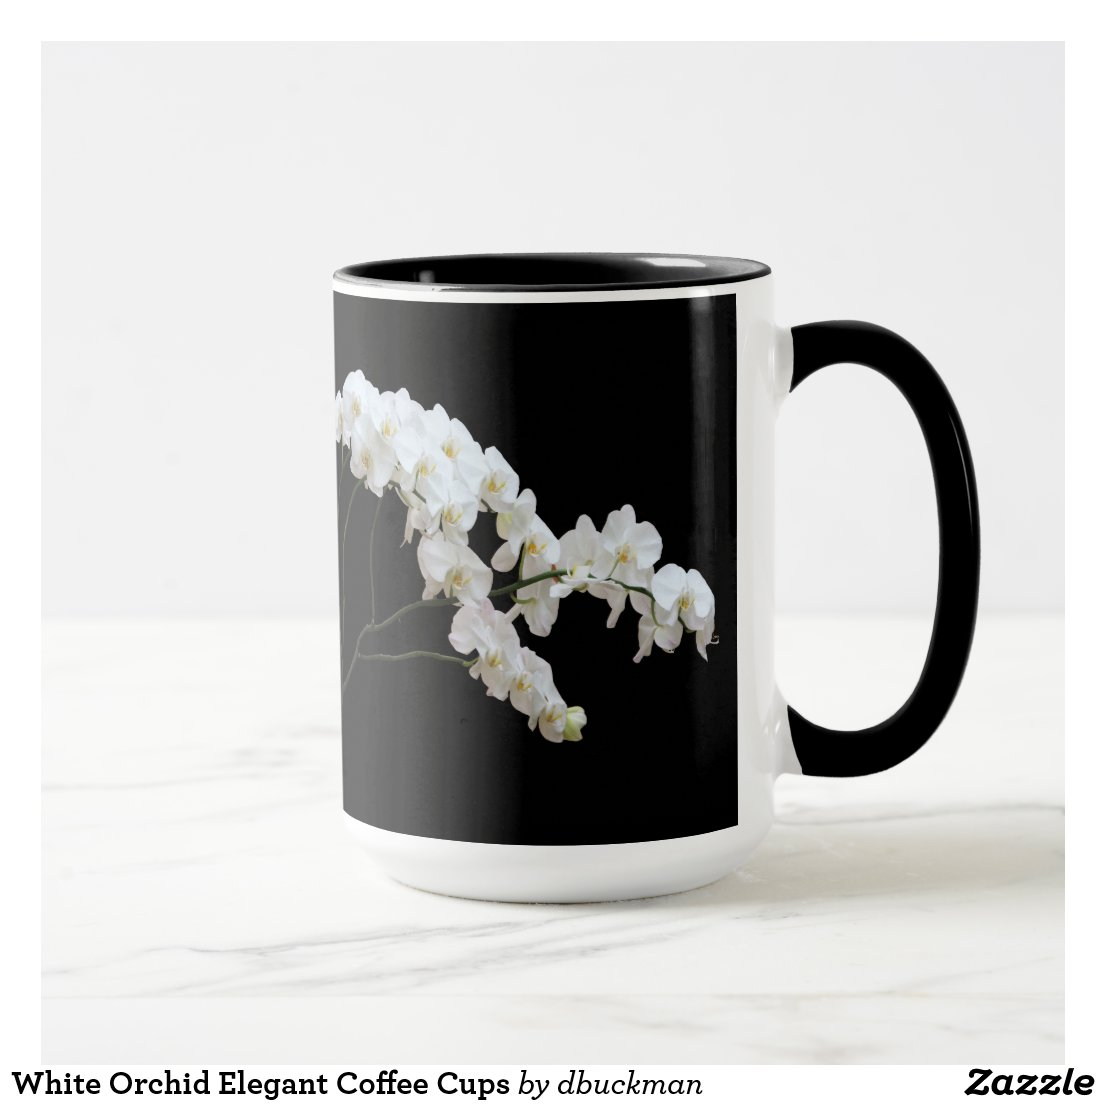 White Orchid Elegant Coffee Cups